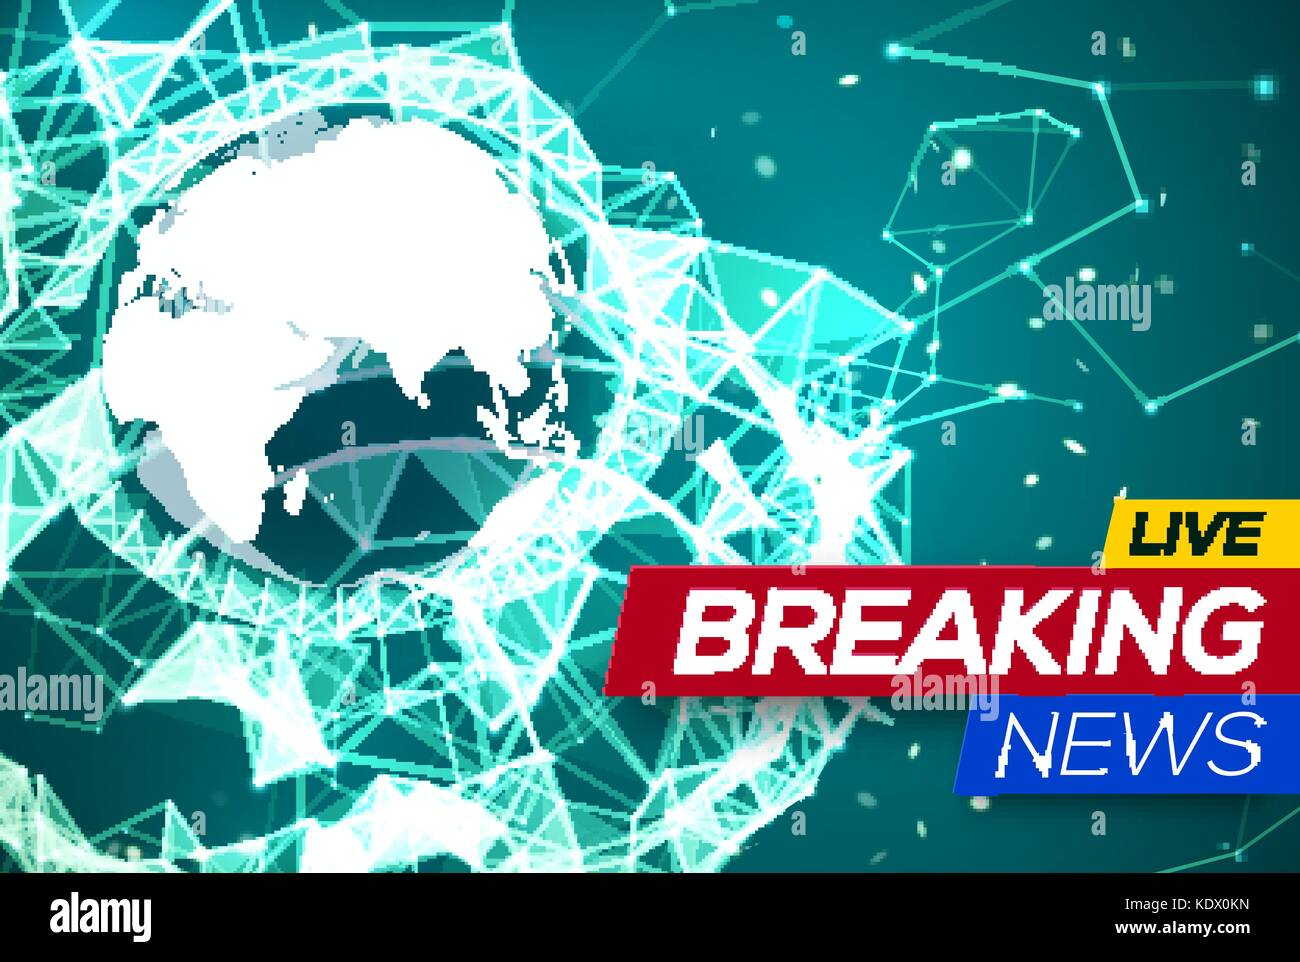 Breaking News Live with World Map Africa and Europe on Green Stock ...